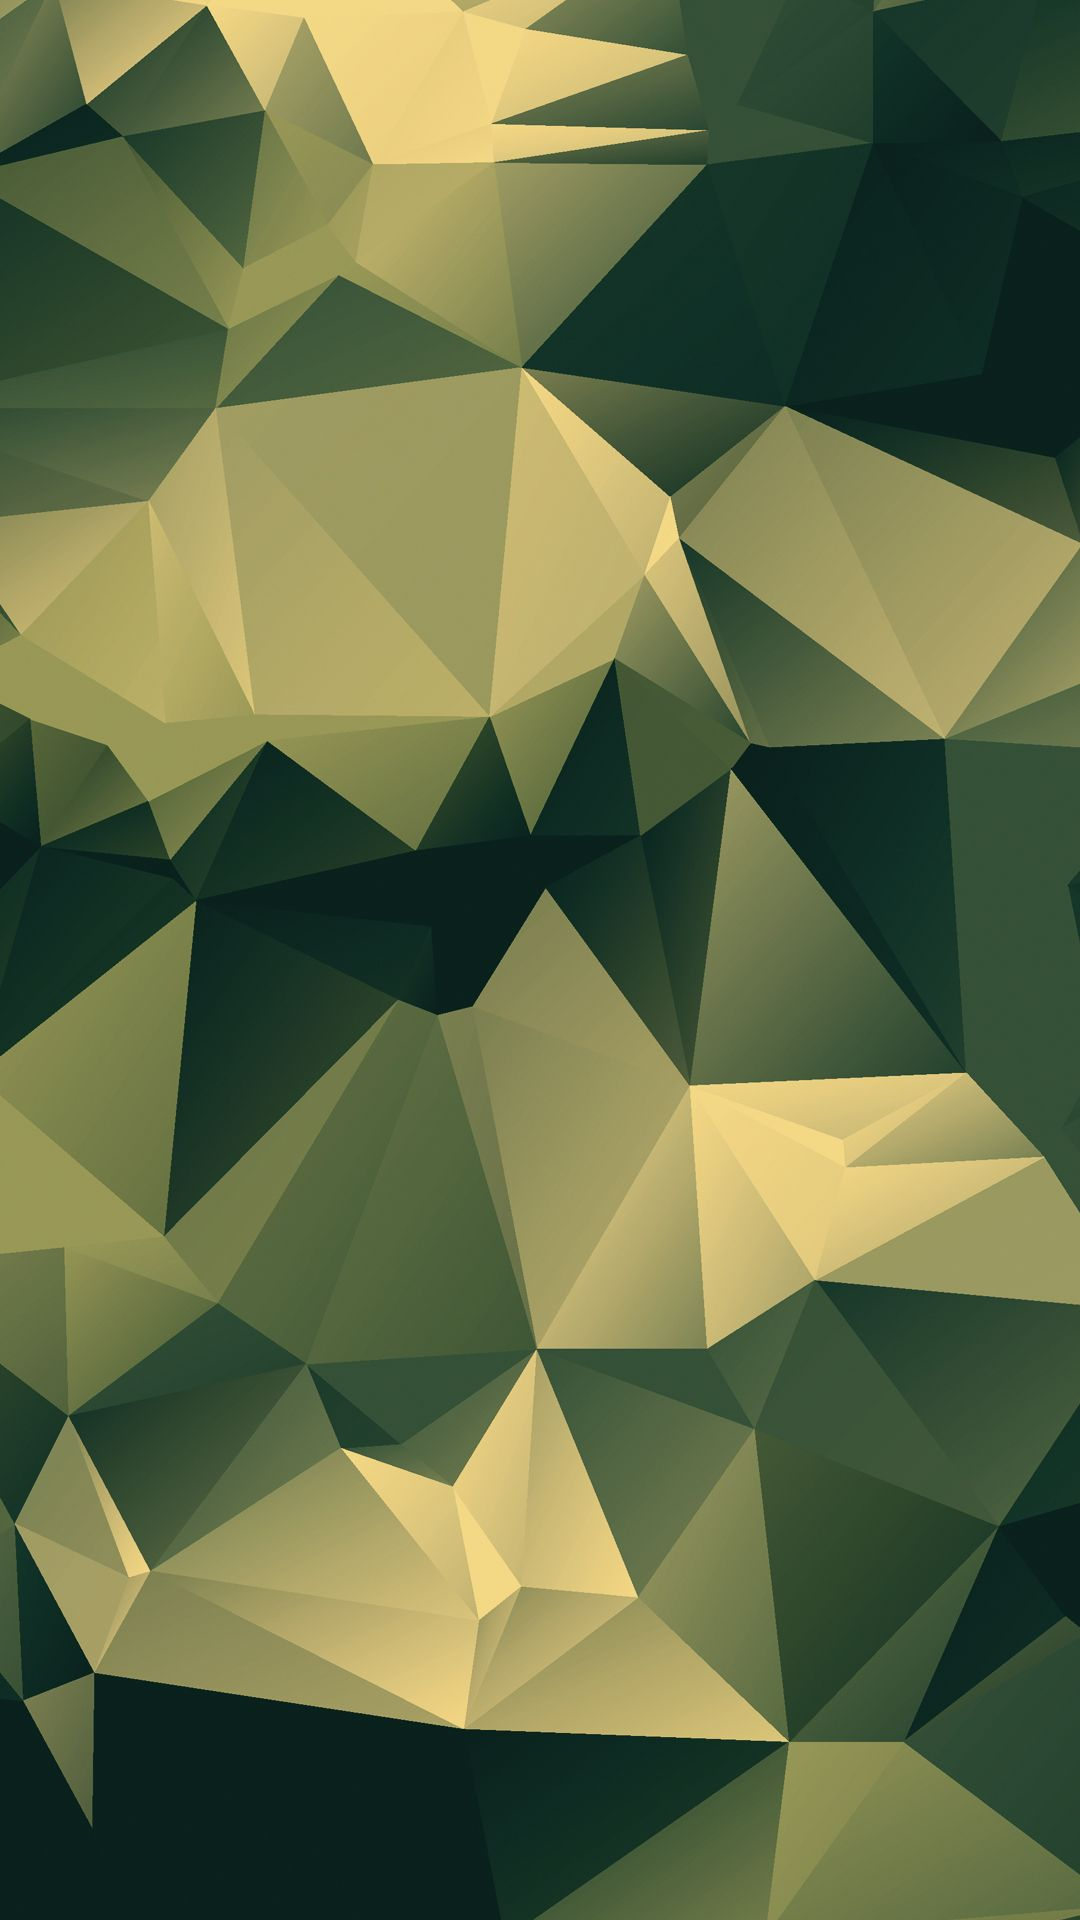 1080x1920 Polygon Camo Android Phone Wallpaper ...1174